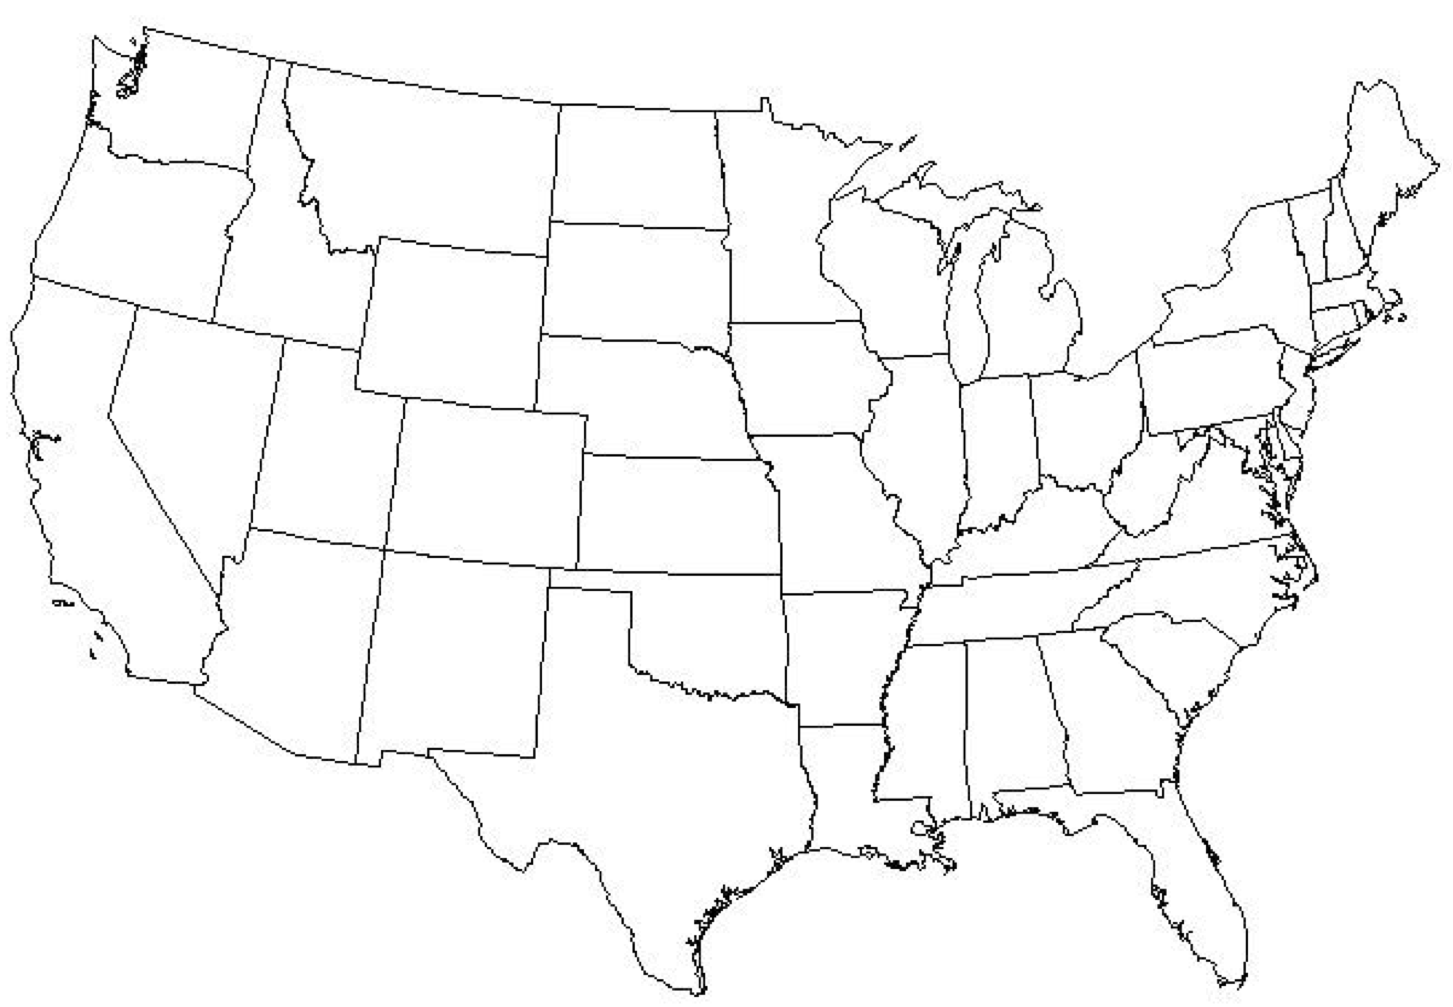 This is a photo of Breathtaking Blank Printable Map of the United States